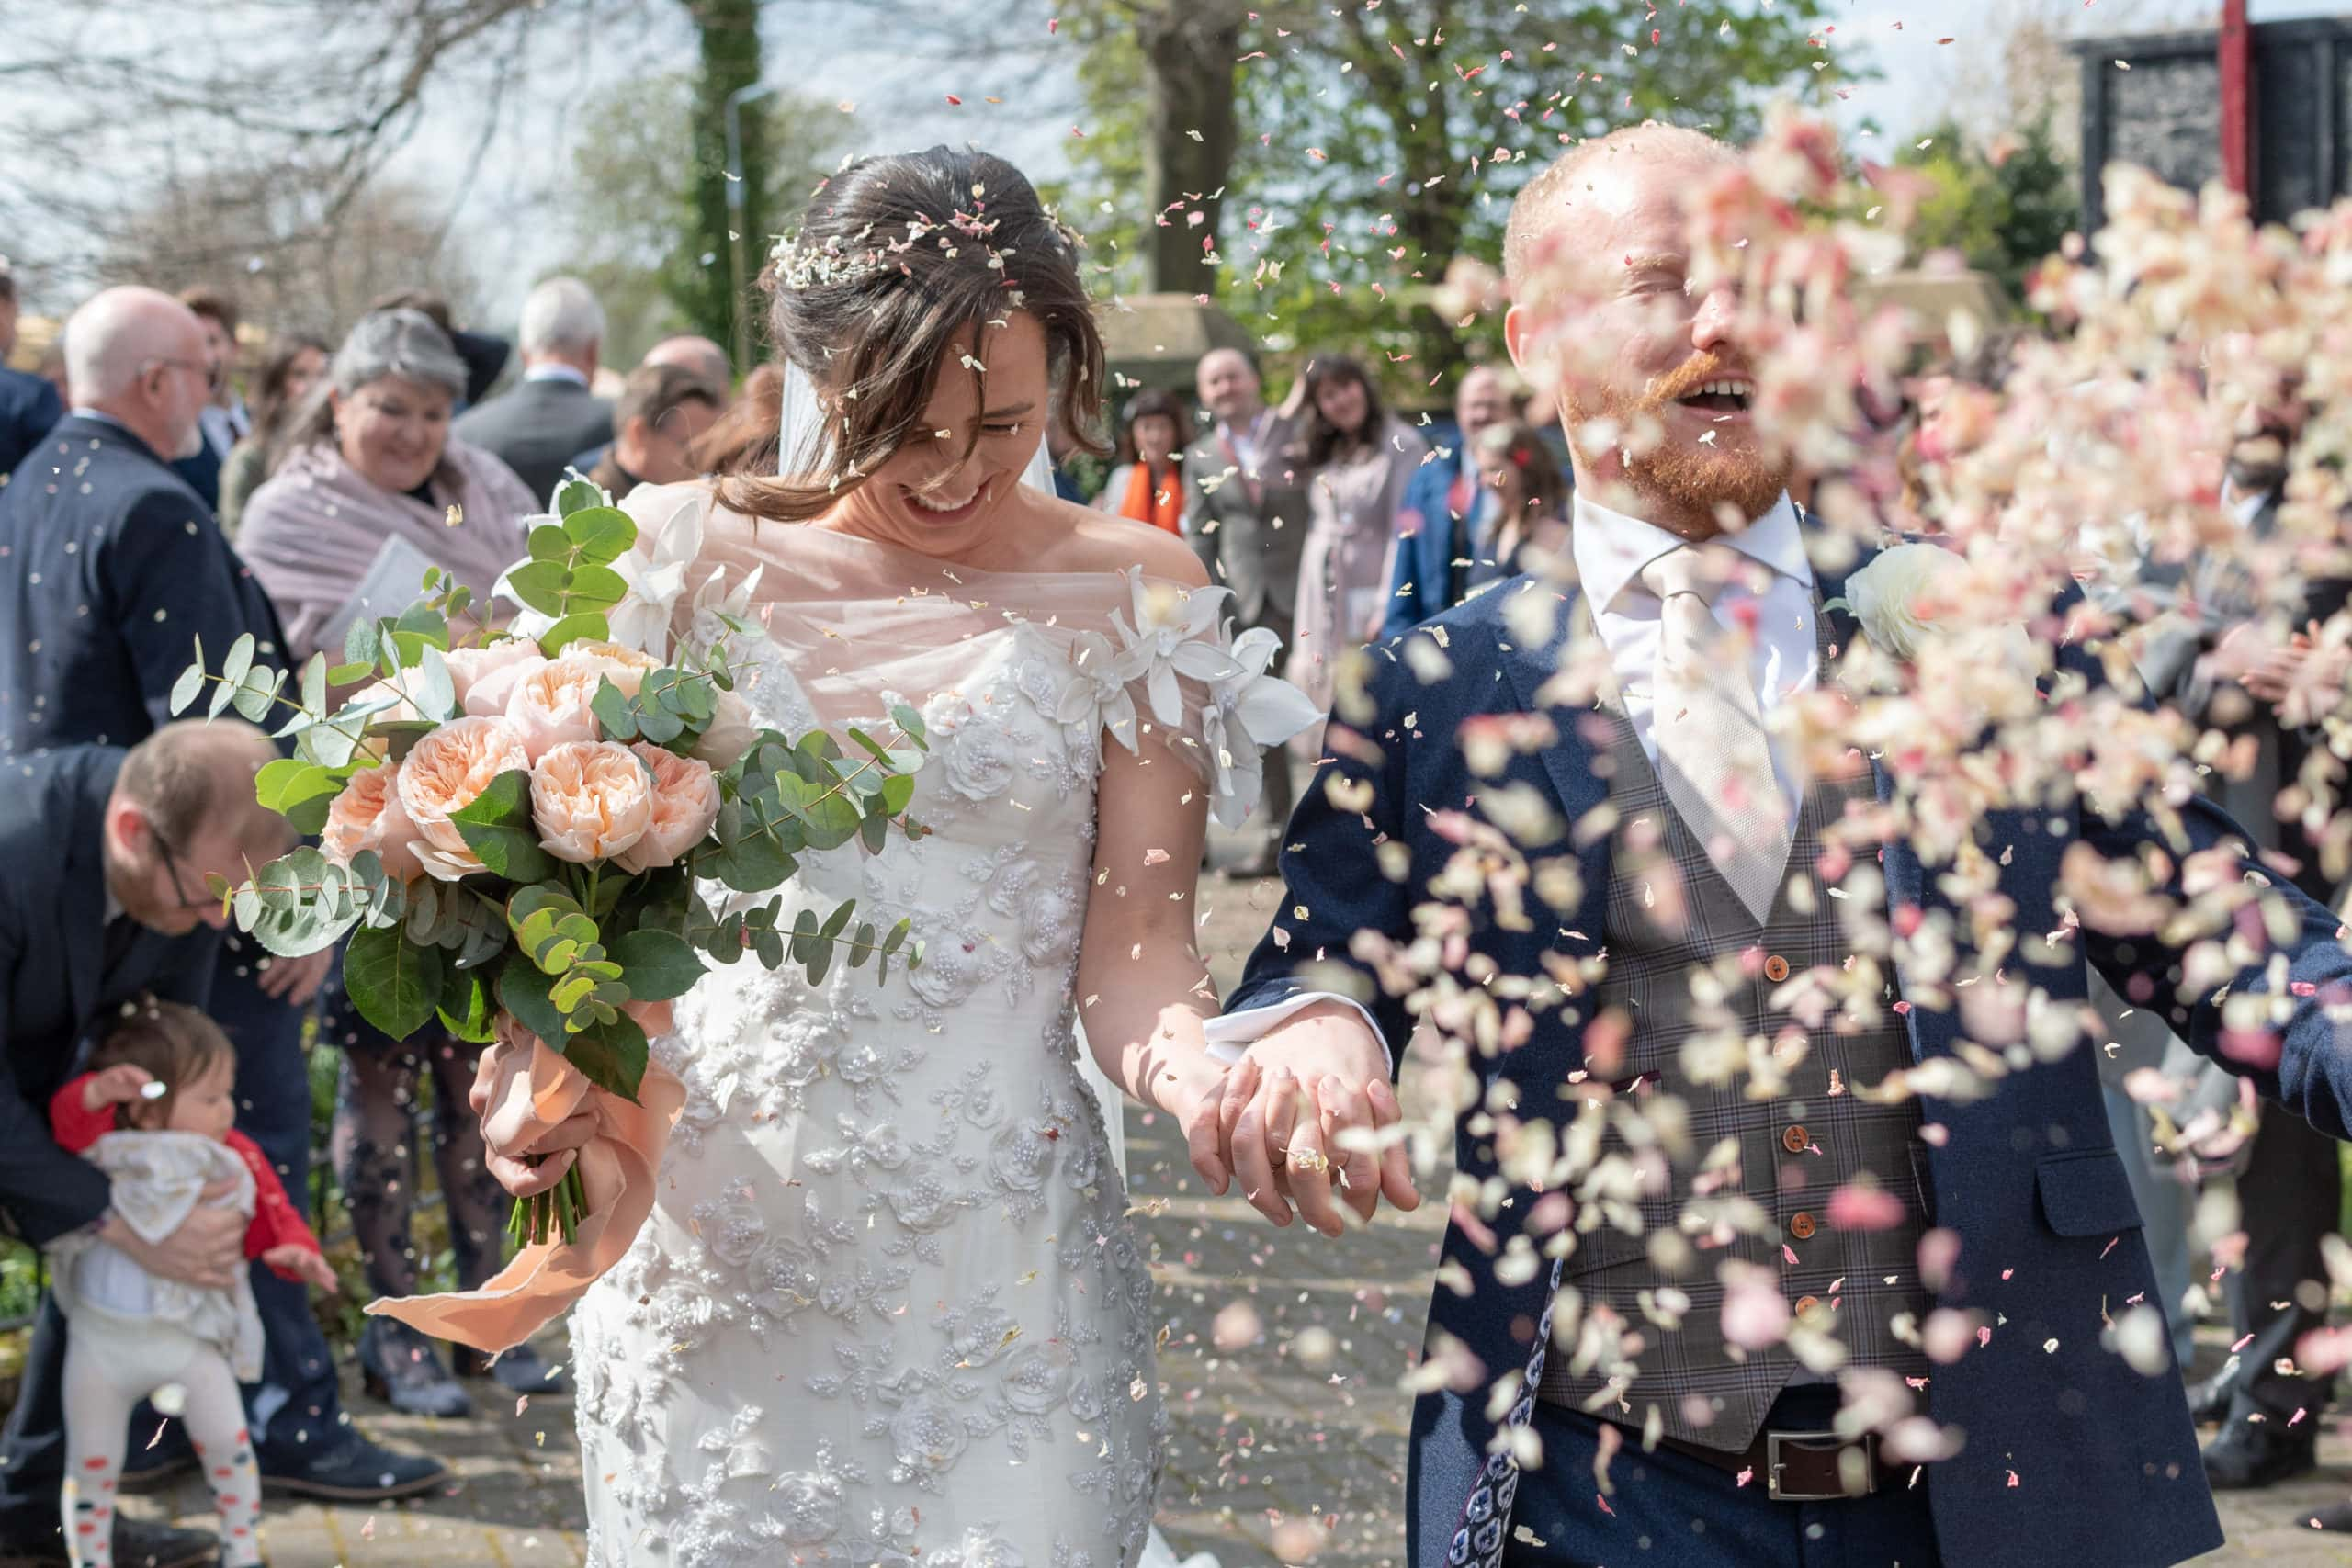 A shower of confetti and a married couple